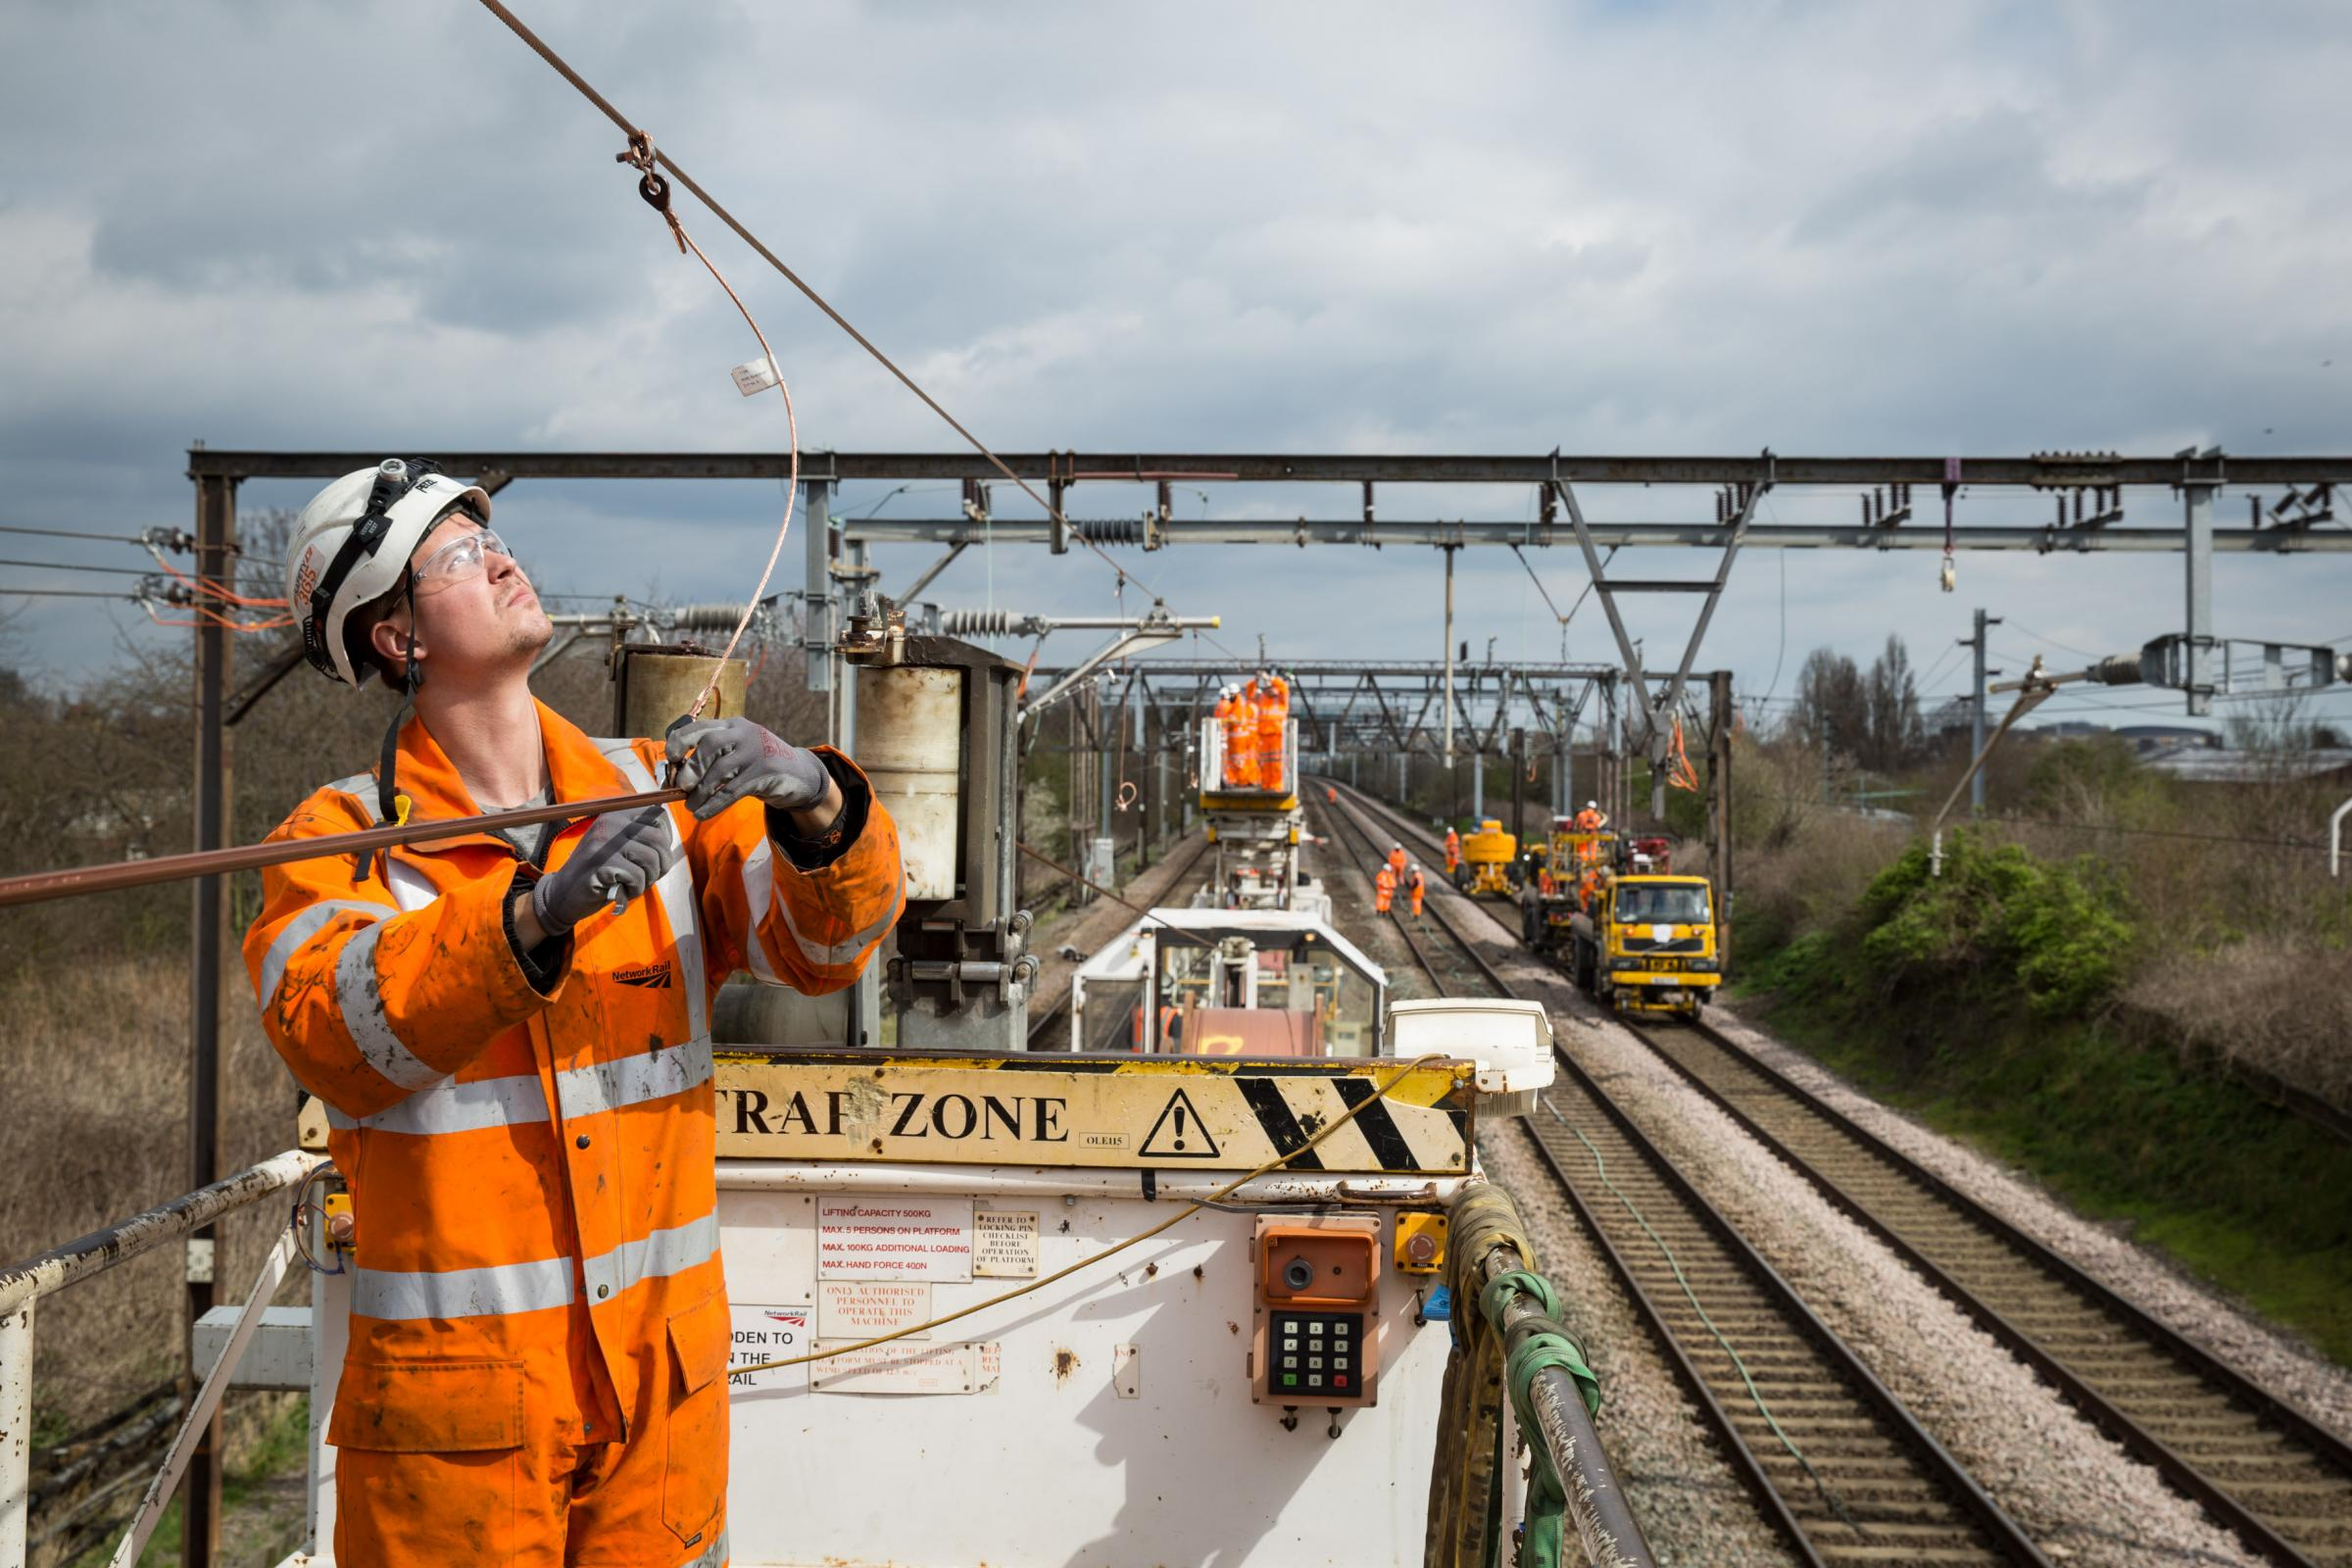 Electrification delayed between Oxford and Didcot